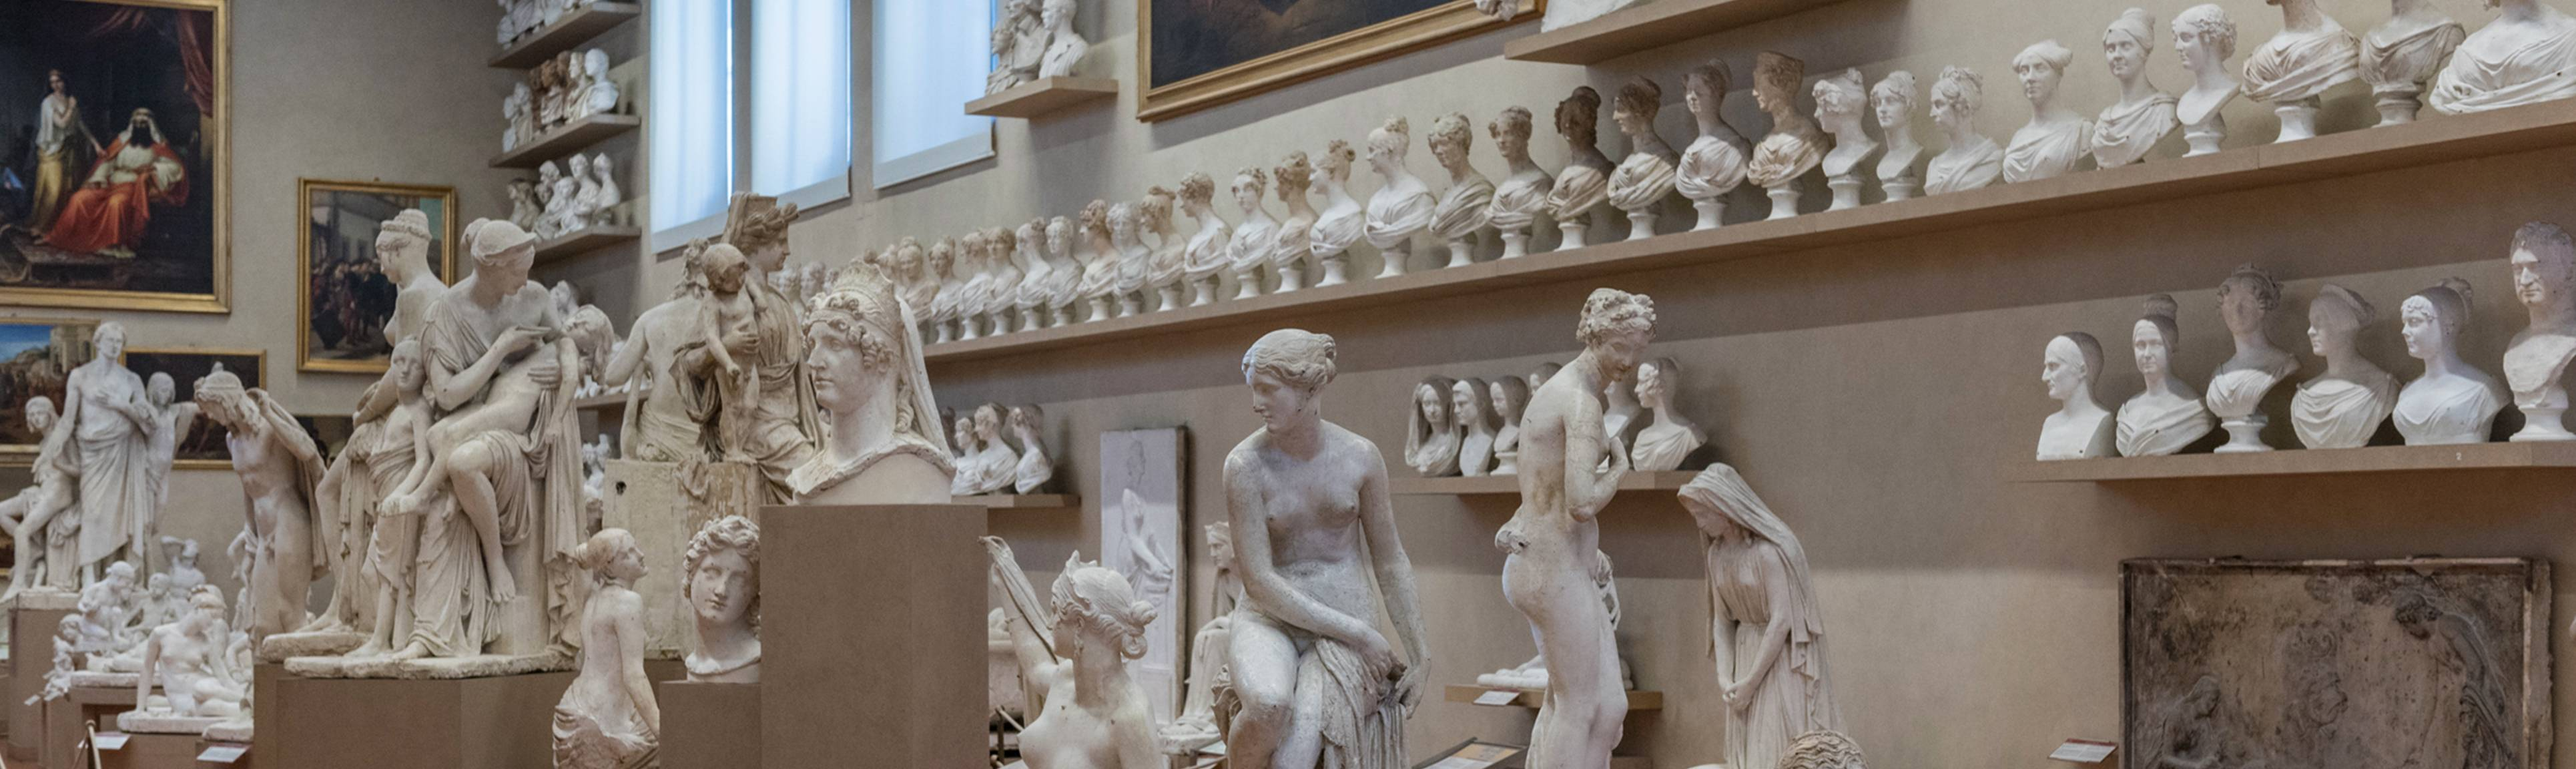 Room full of plaster statues and busts at Galleria dell'Accademia, Florence